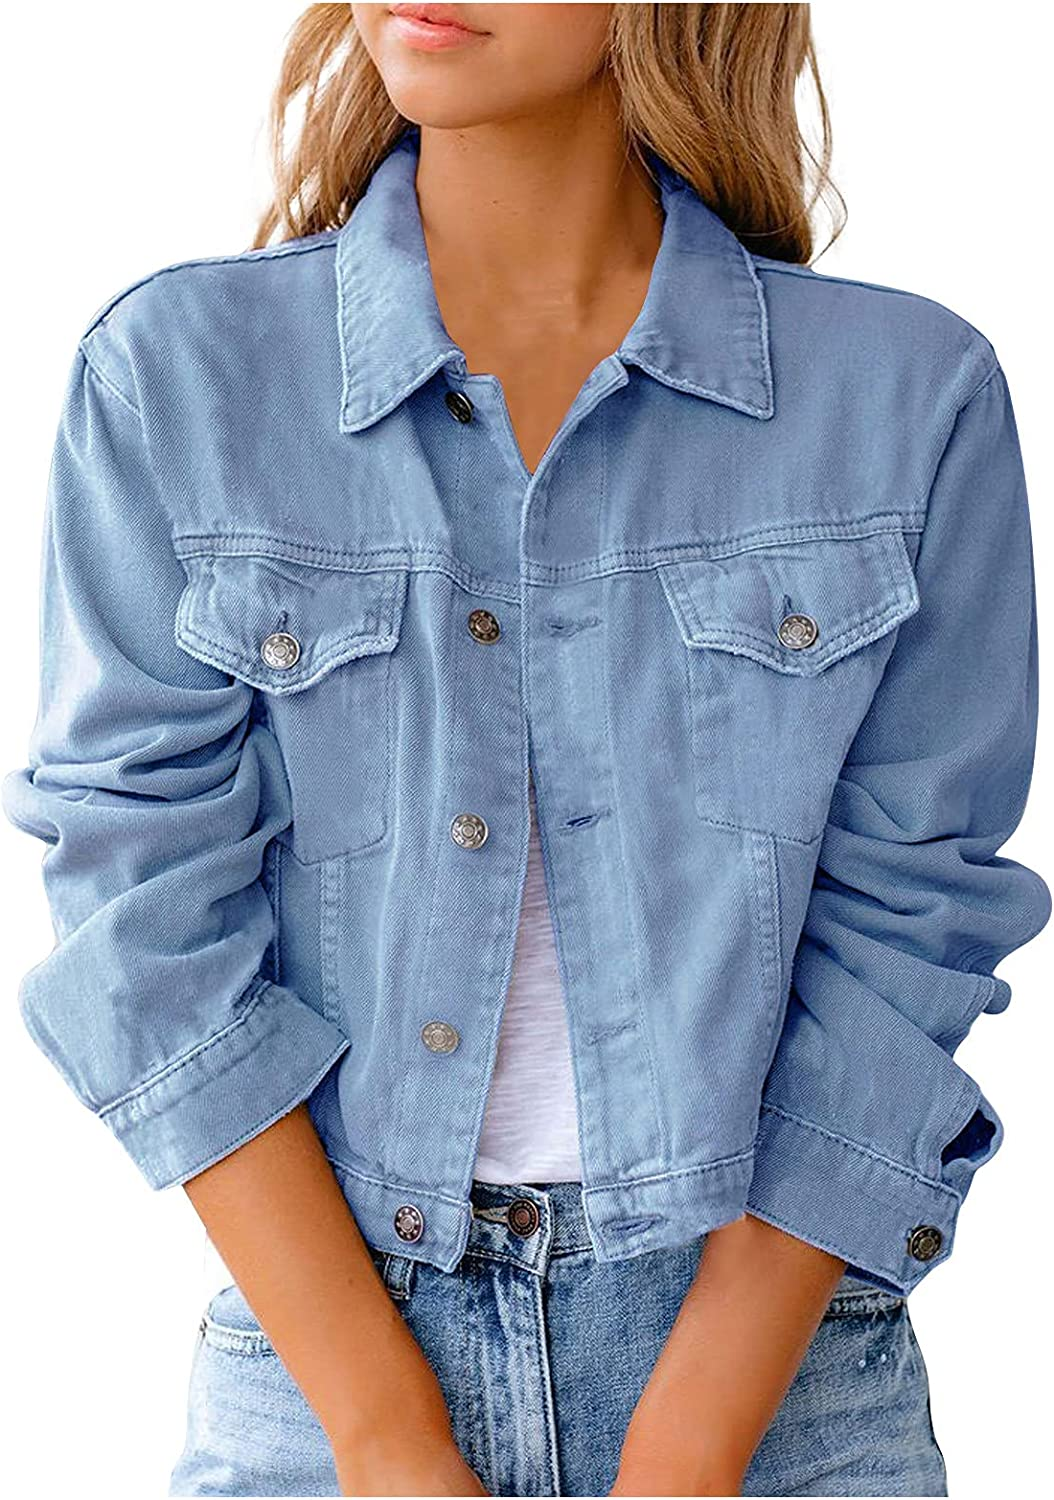 Women Denim Jacket Fashion Solid Color Button Cardigan Casual Denim Clothes Jackets and Coats